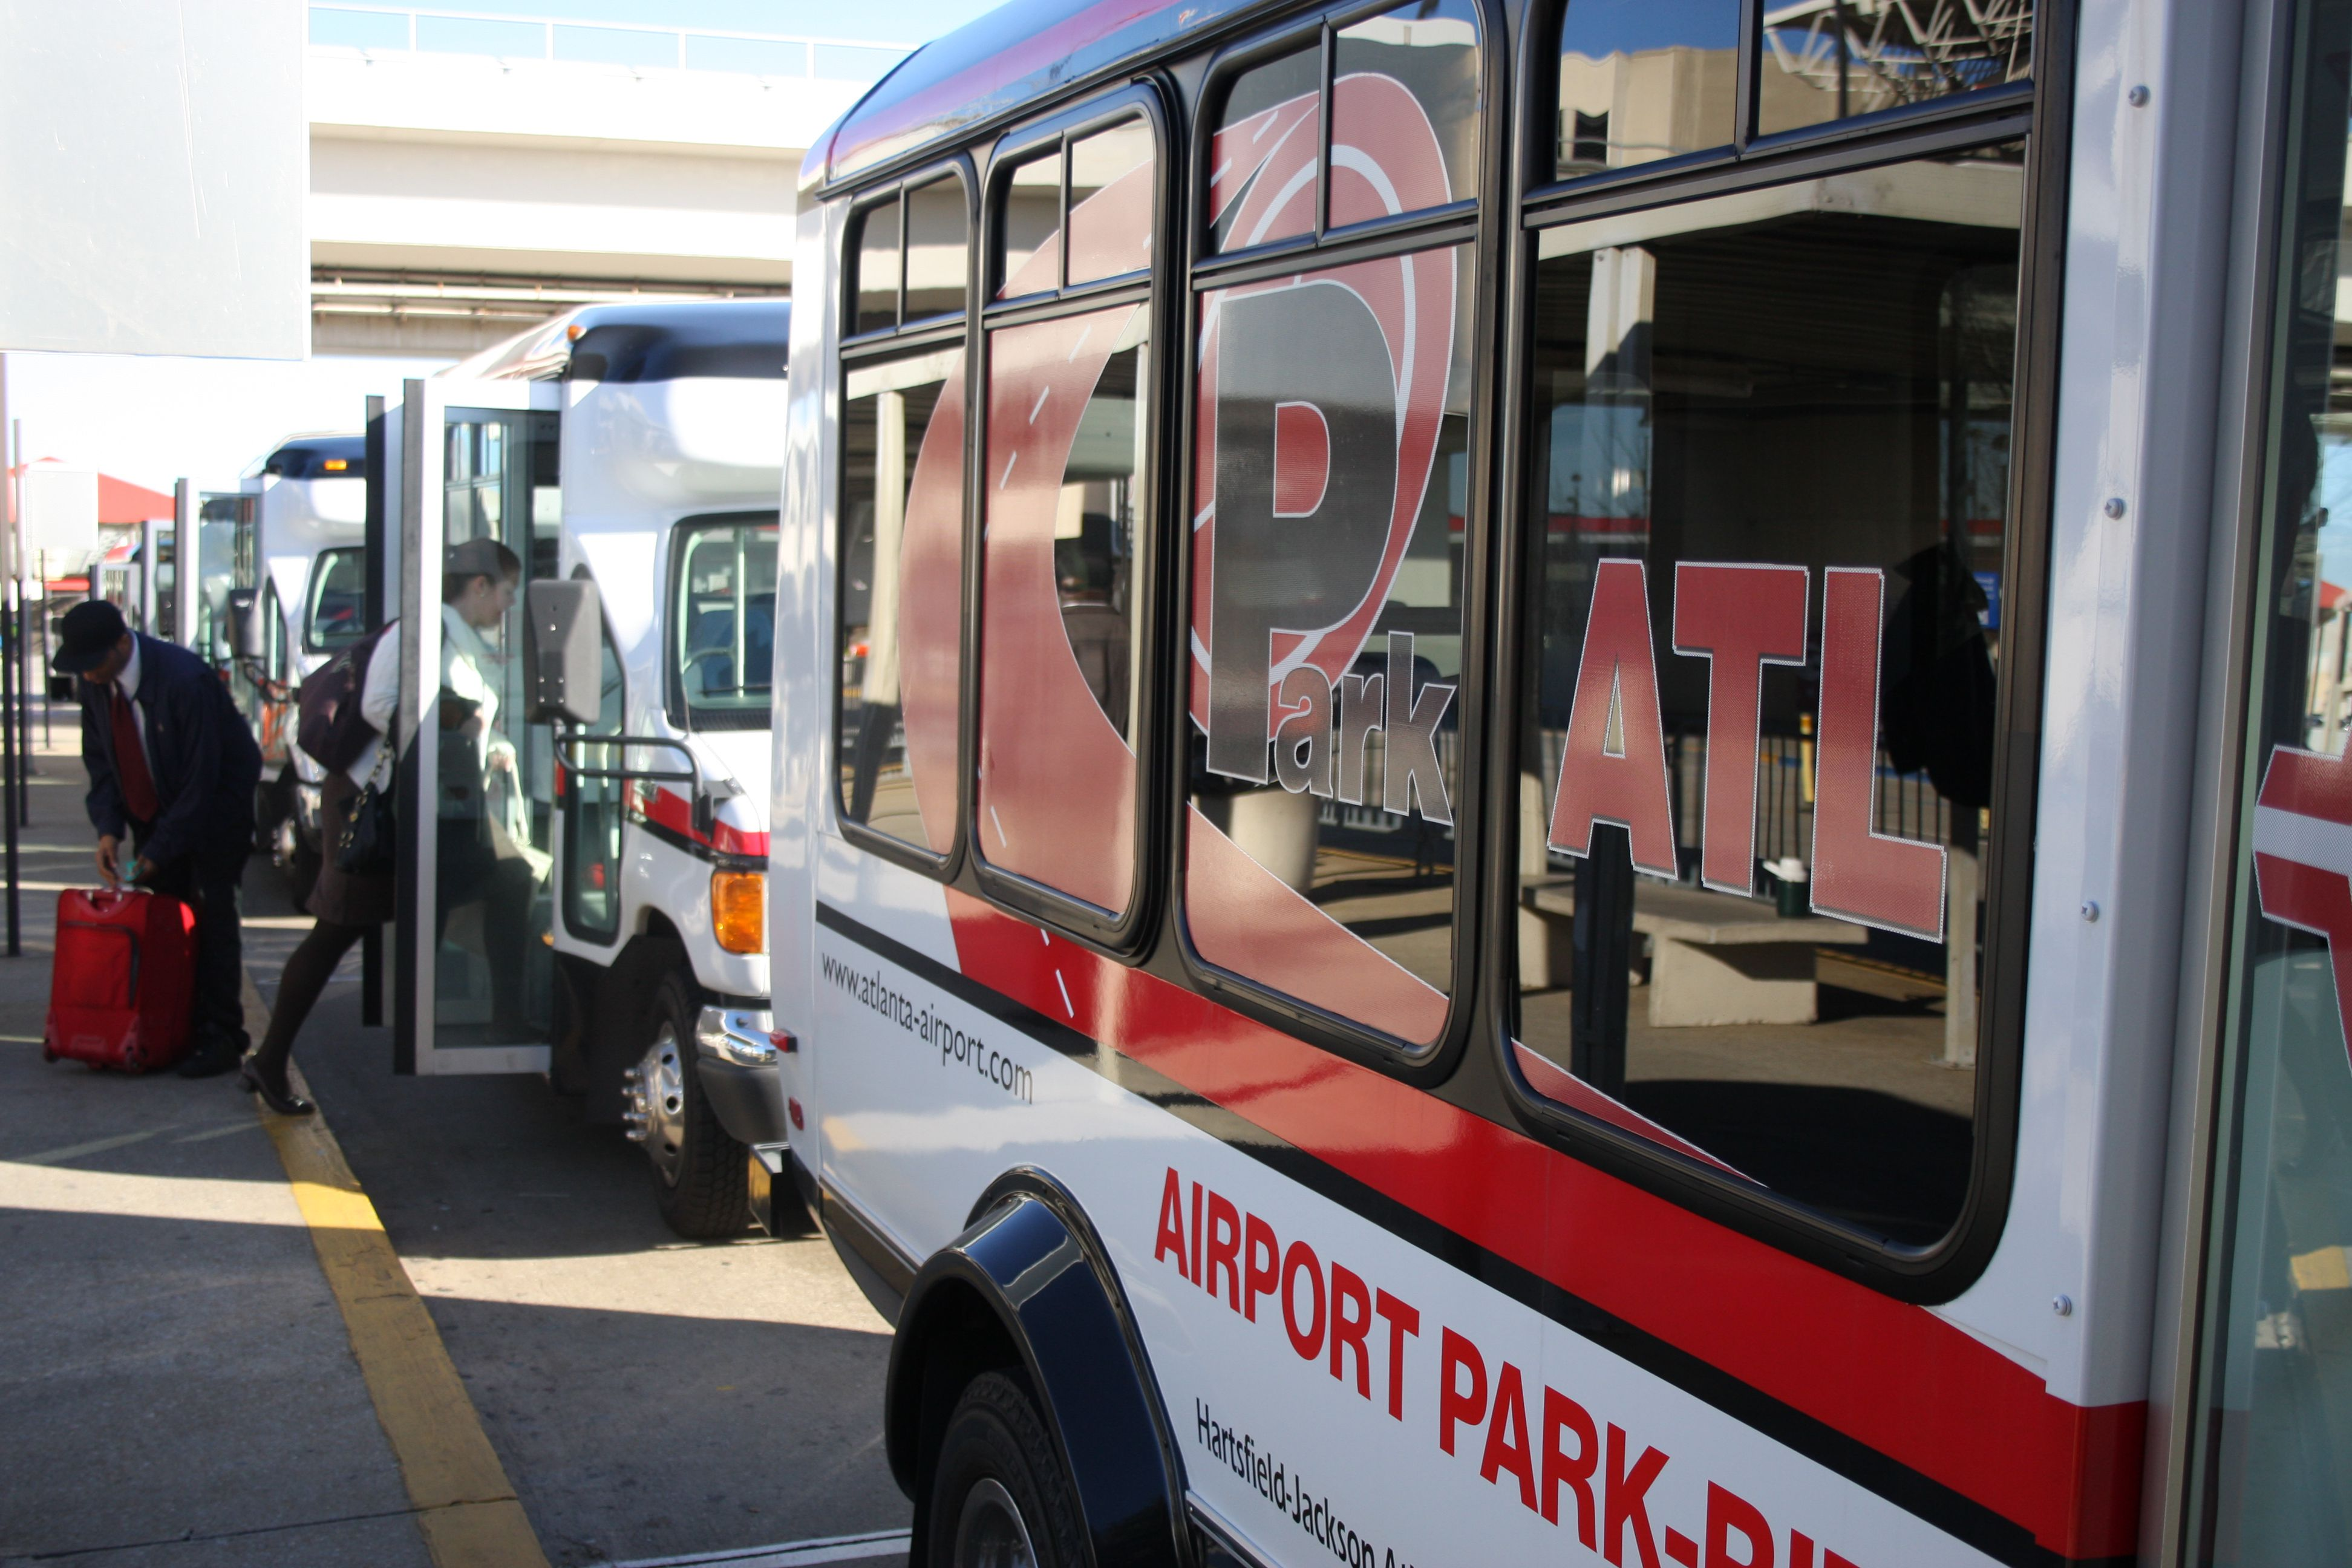 Atlanta Airport Hotels With Parking And Shuttle